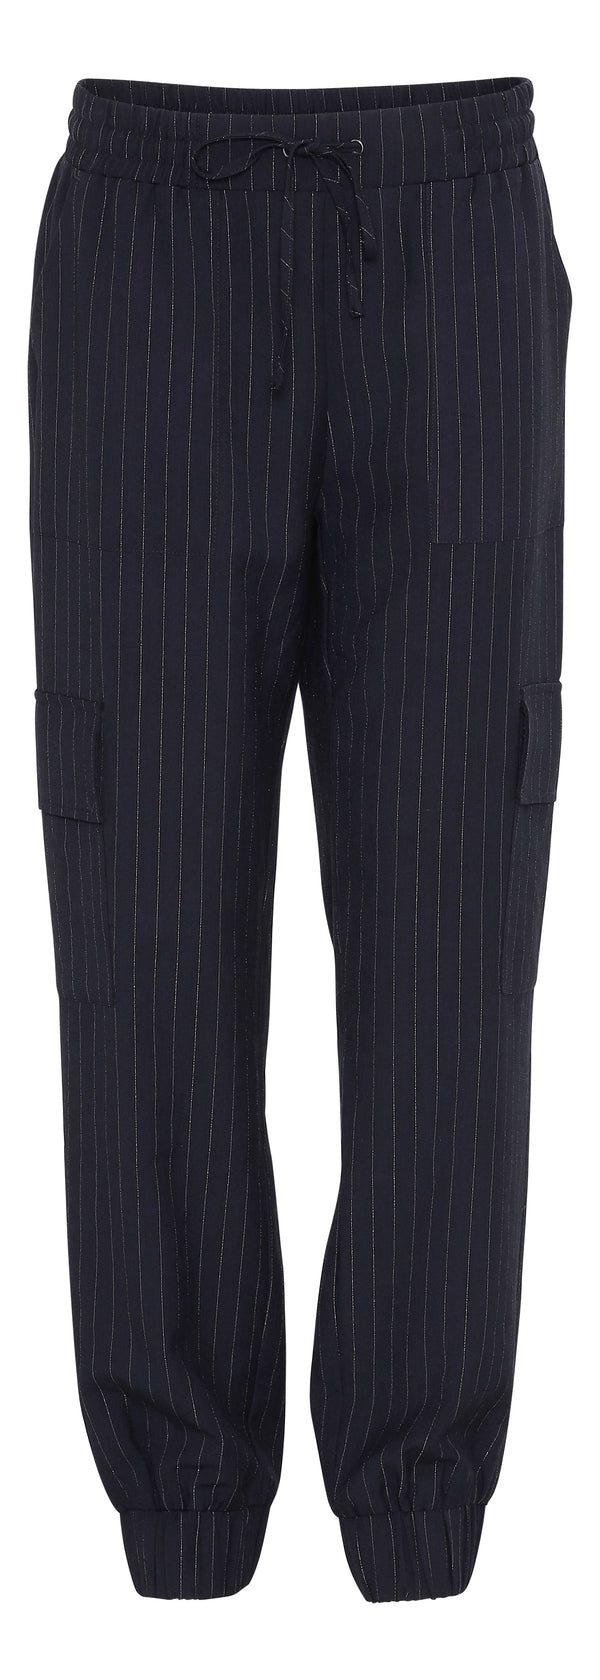 A-View Aggie AV10240 Pants 699 Navy